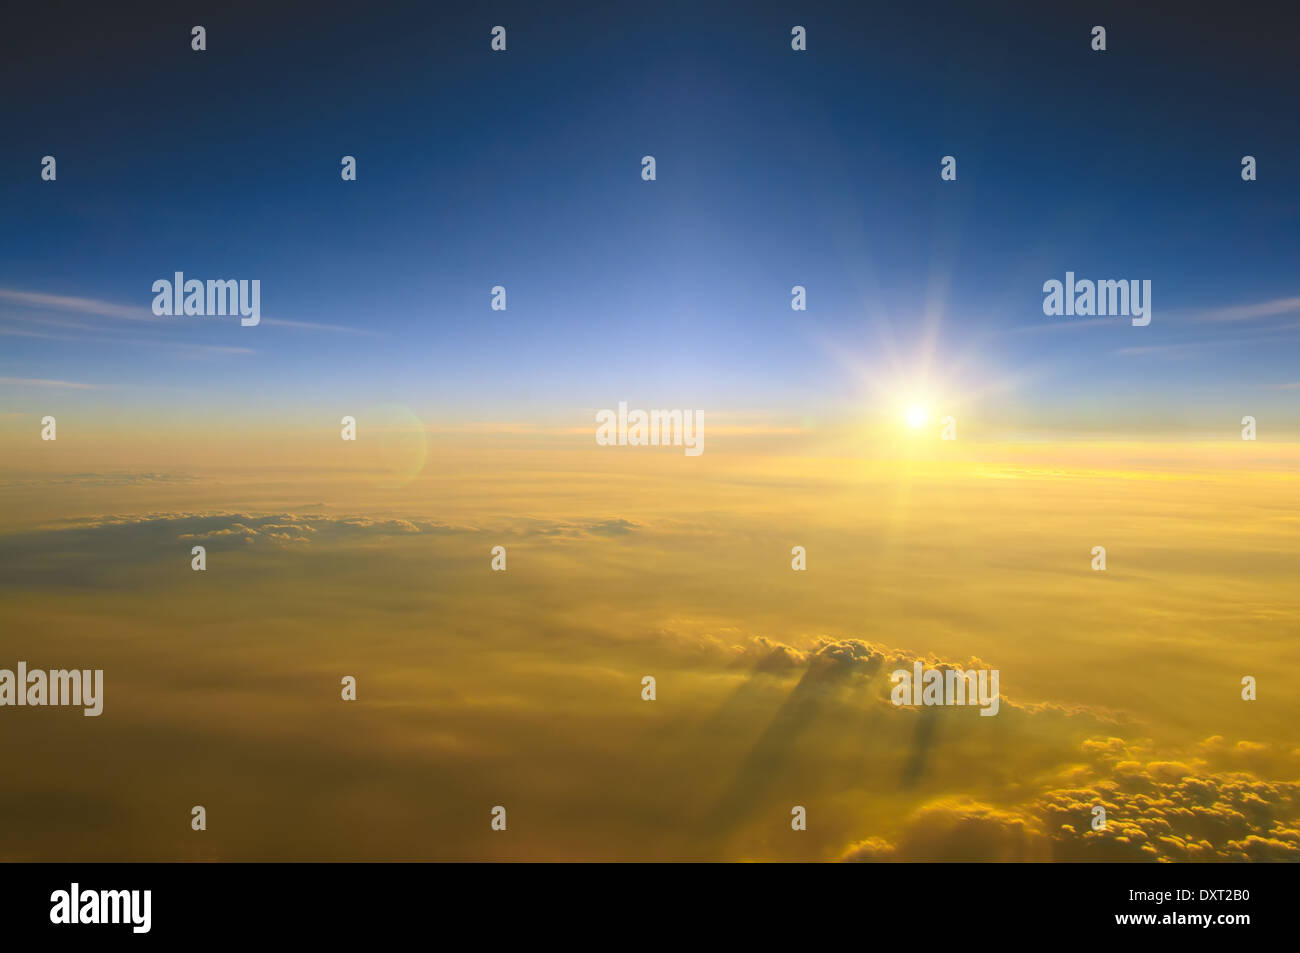 Spectacular view of a sunset above the clouds from airplane window - Stock Image